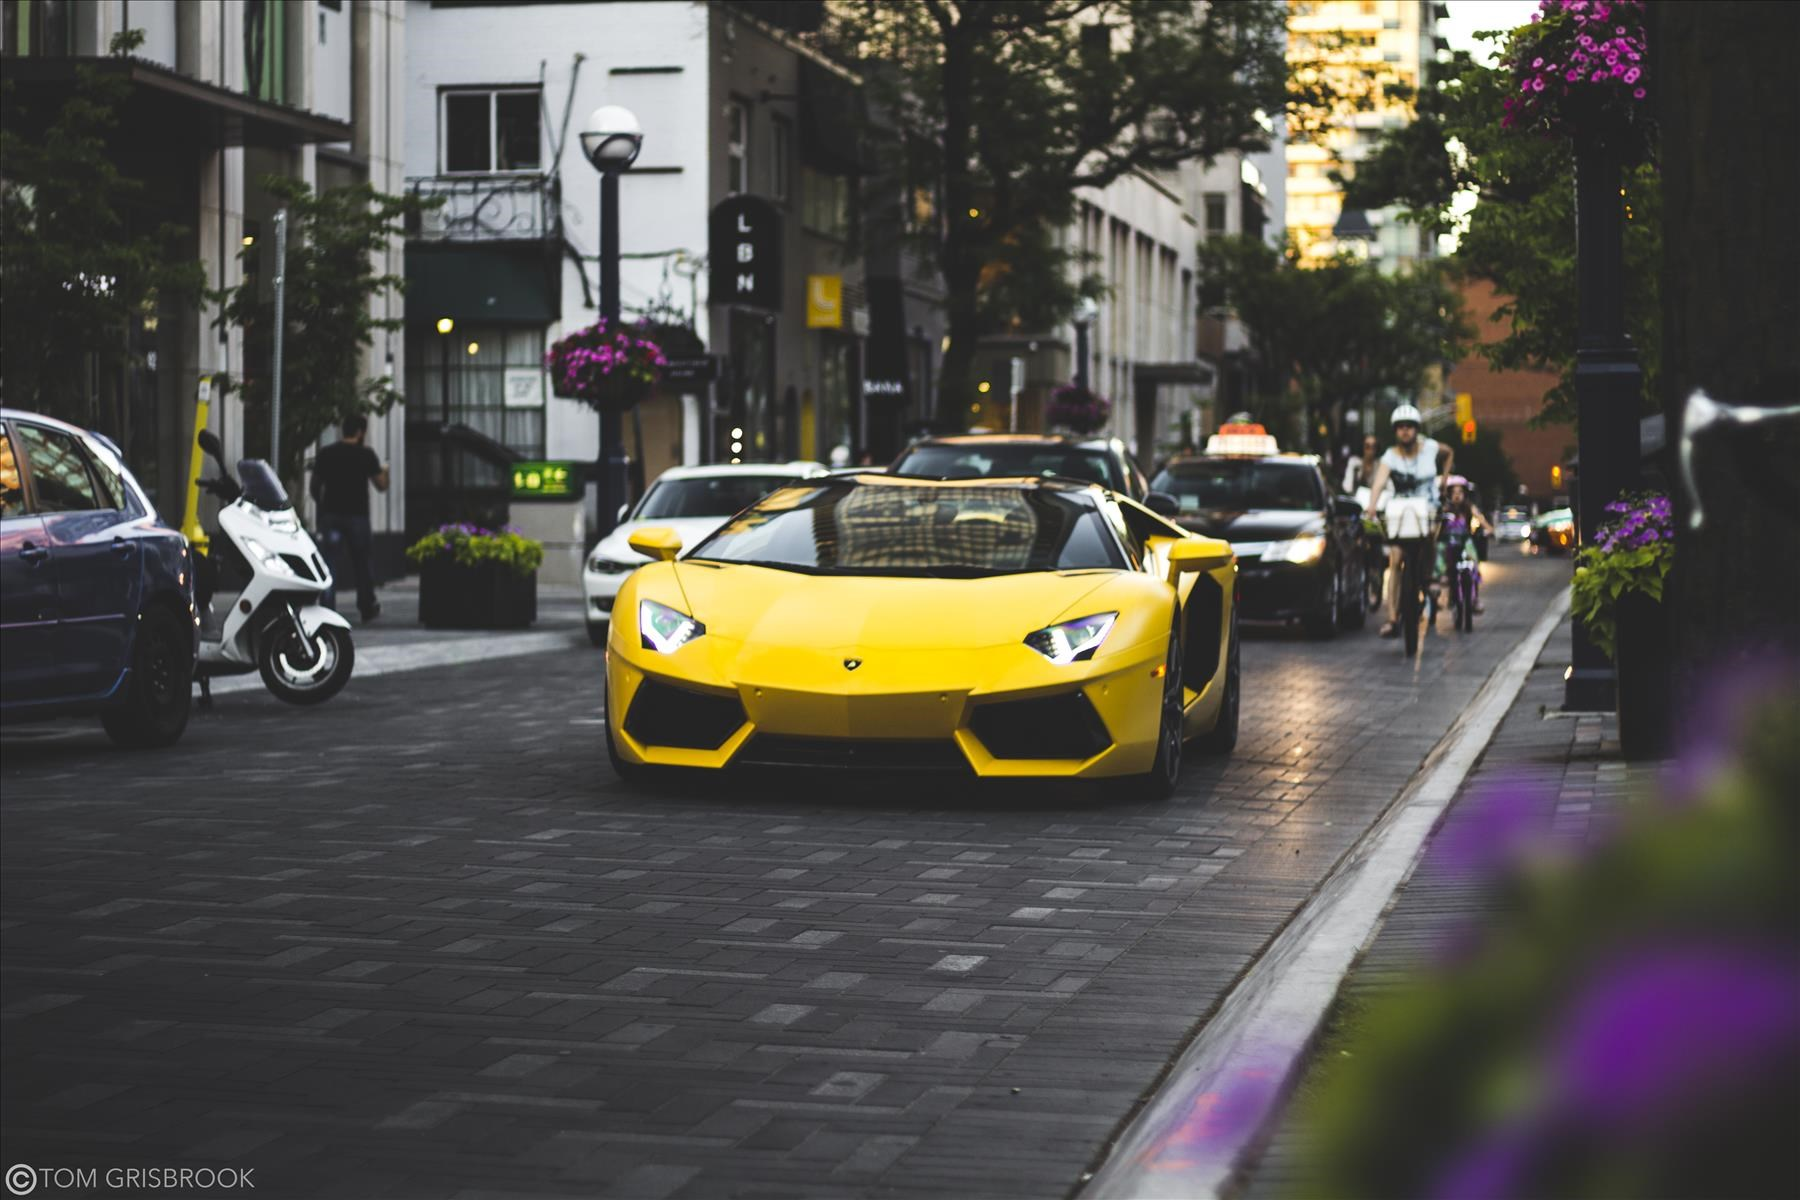 Lamborghini Aventador Roadster cruising through Yorkville